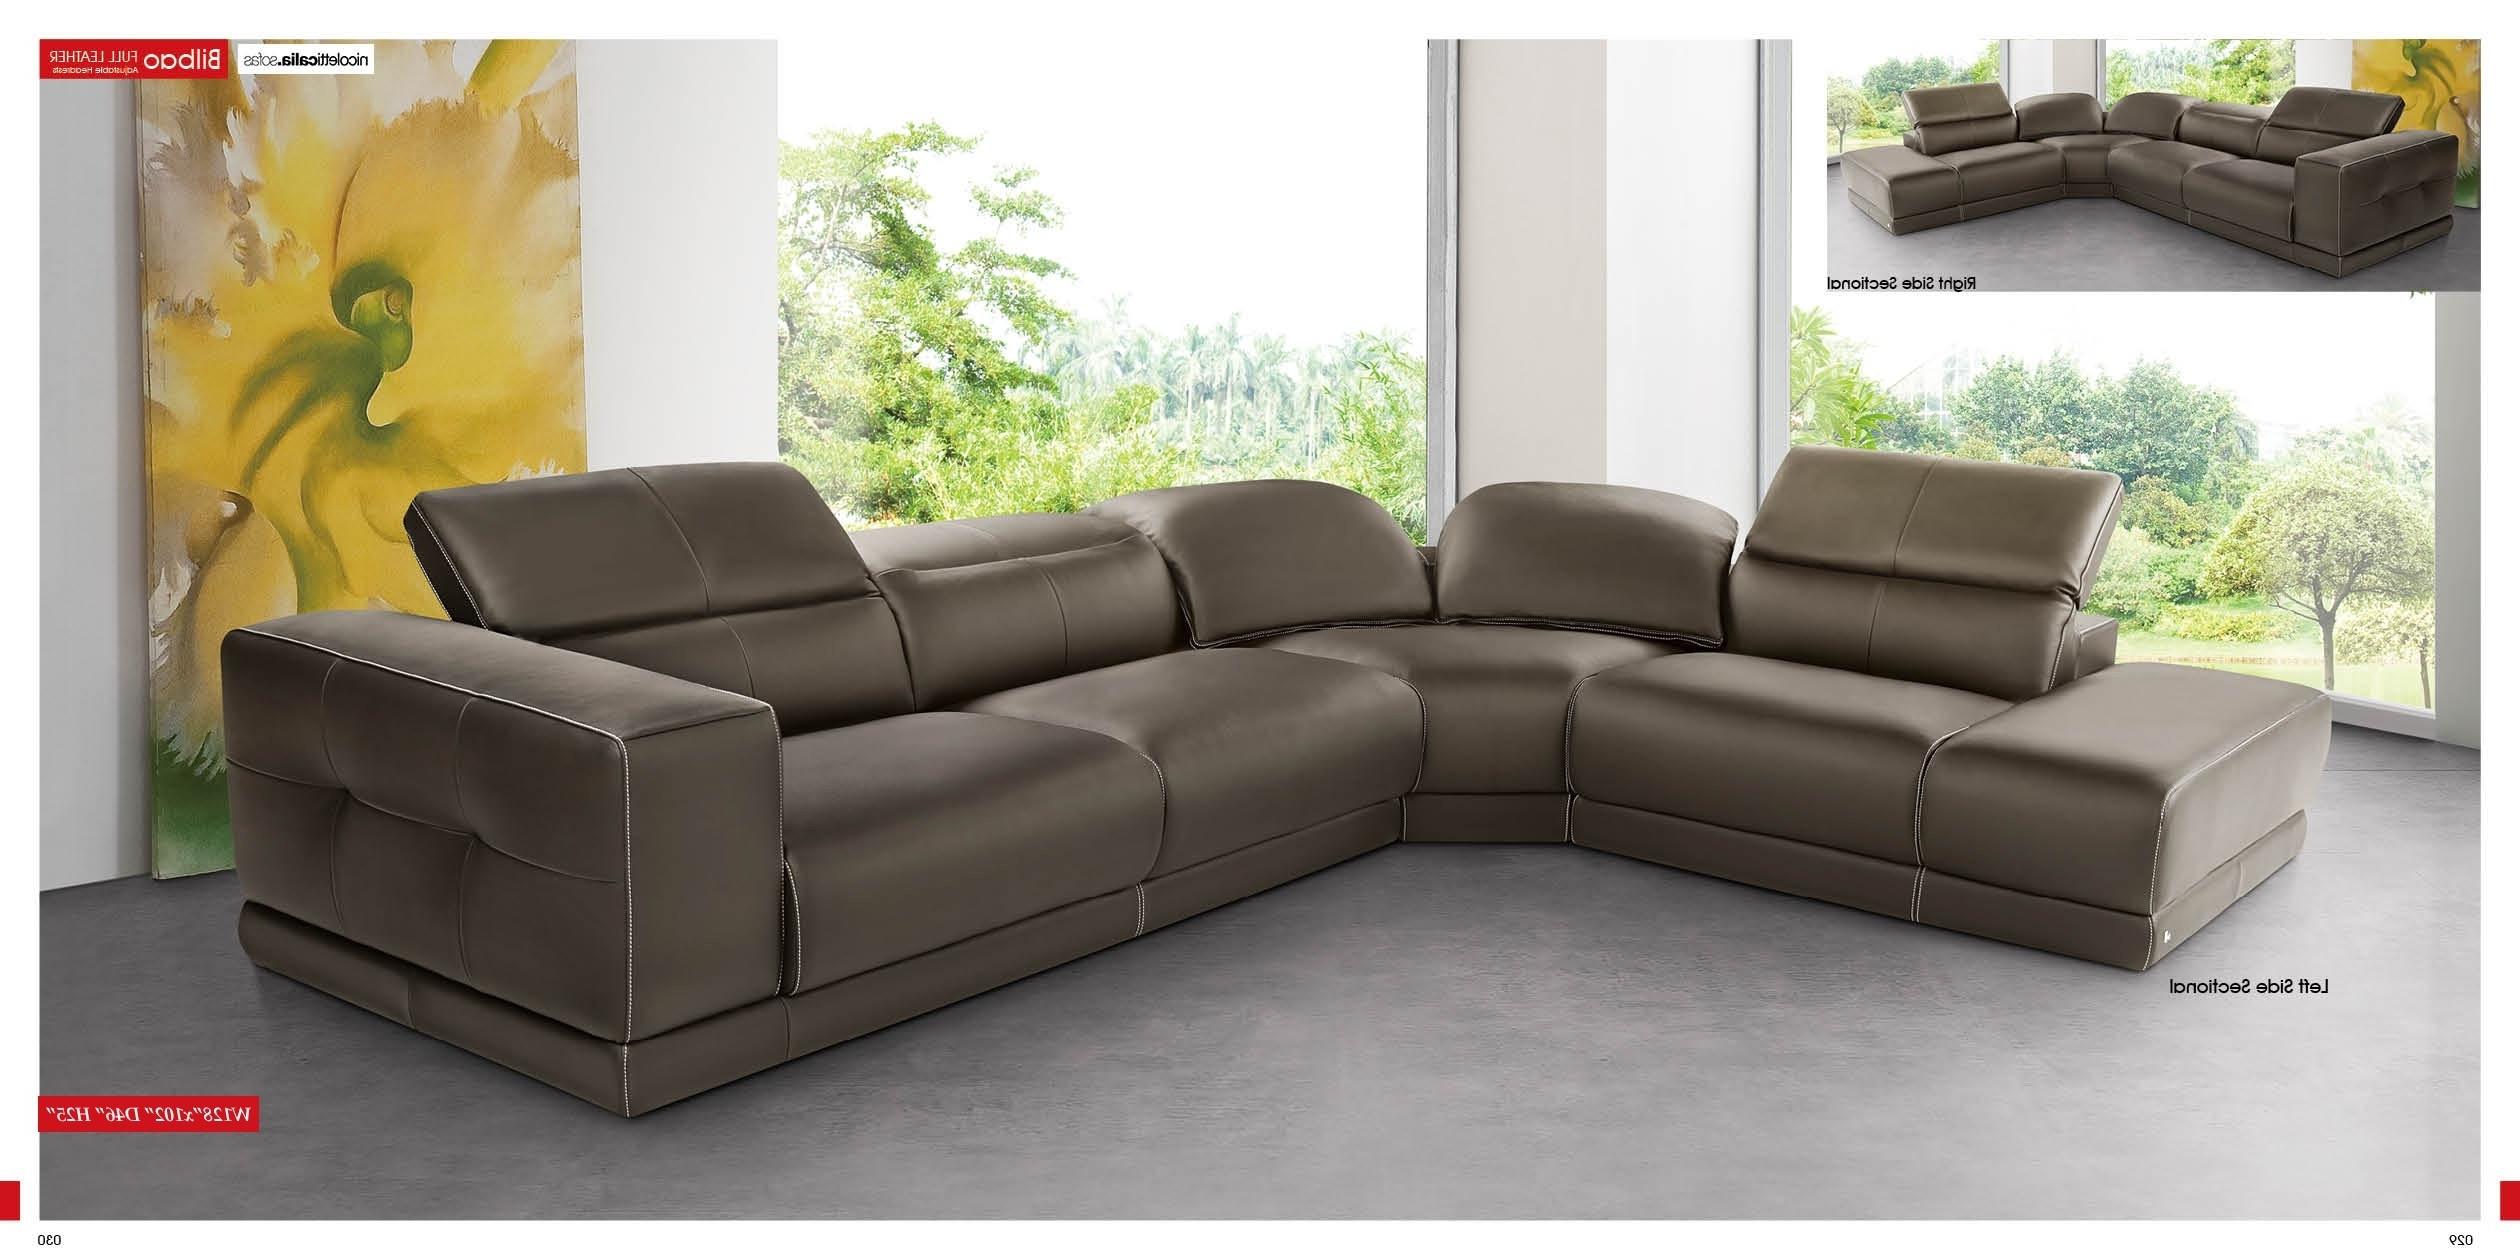 Well Known Greenville Sc Sectional Sofas Pertaining To Furniture : Sectional Sofa 80 Inches 170 Cm Corner Sofa Recliner (View 5 of 15)